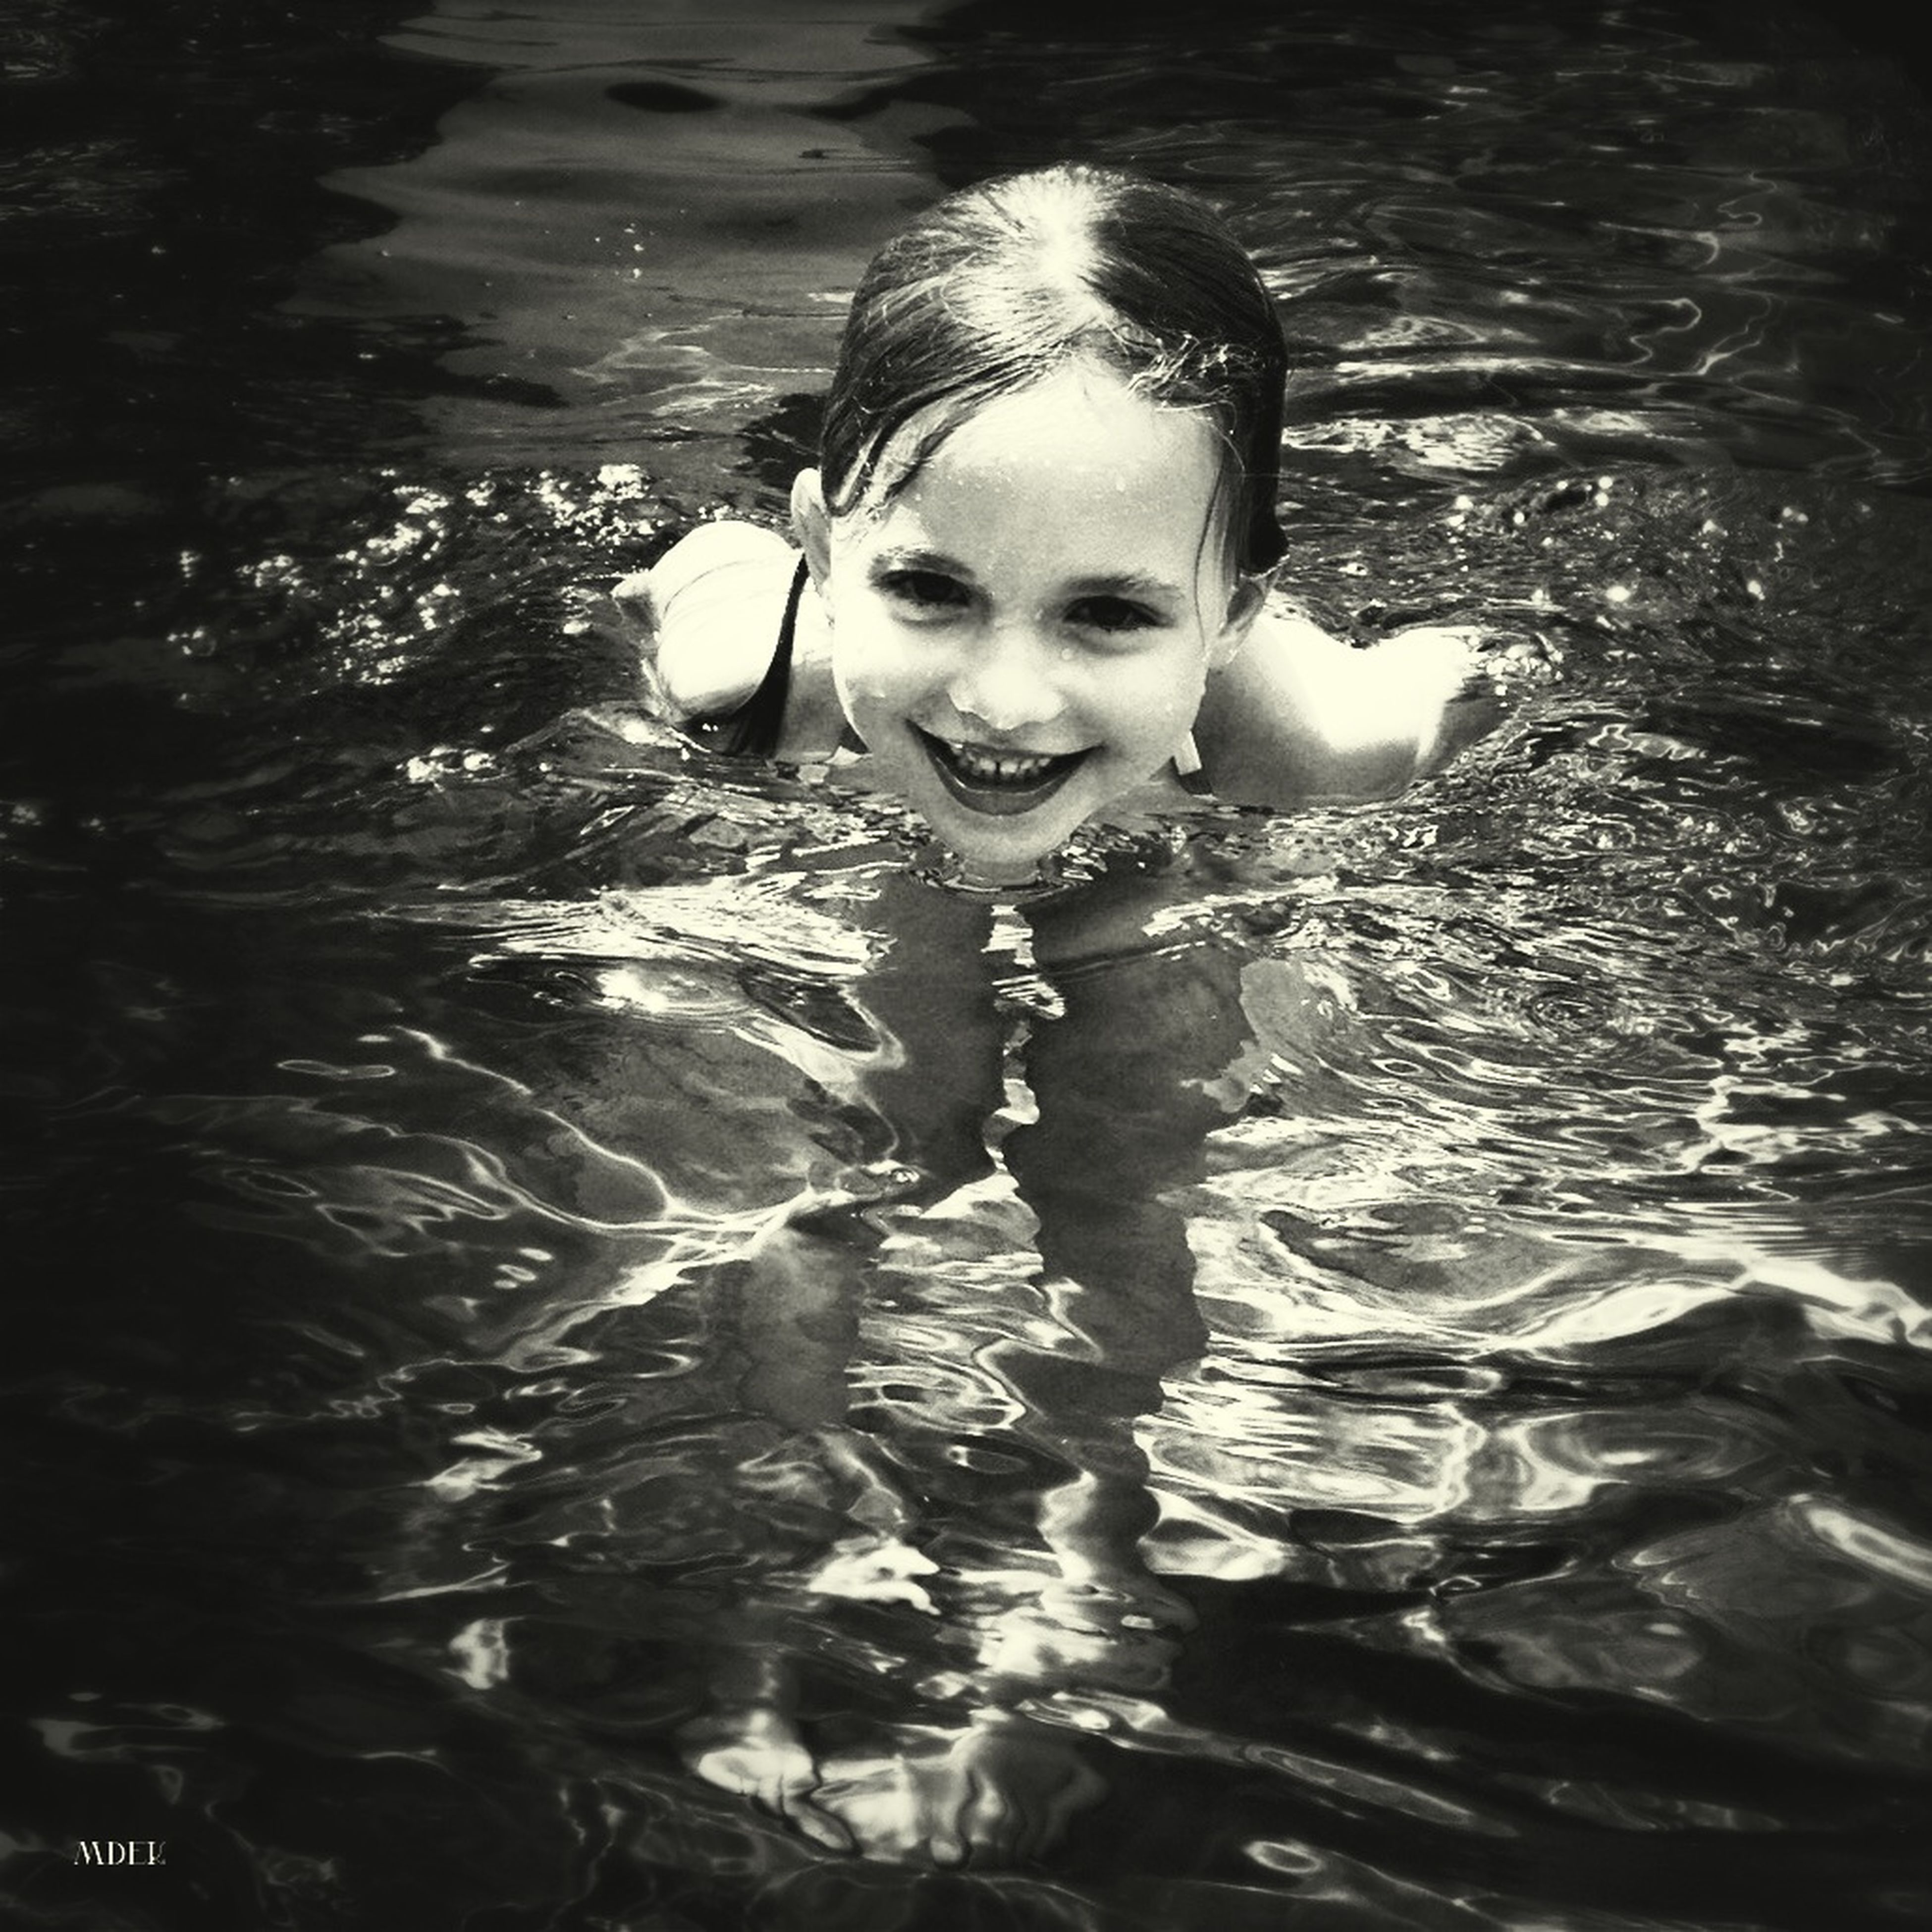 looking at camera, portrait, water, person, lifestyles, elementary age, childhood, leisure activity, front view, smiling, happiness, high angle view, girls, innocence, casual clothing, cute, standing, boys